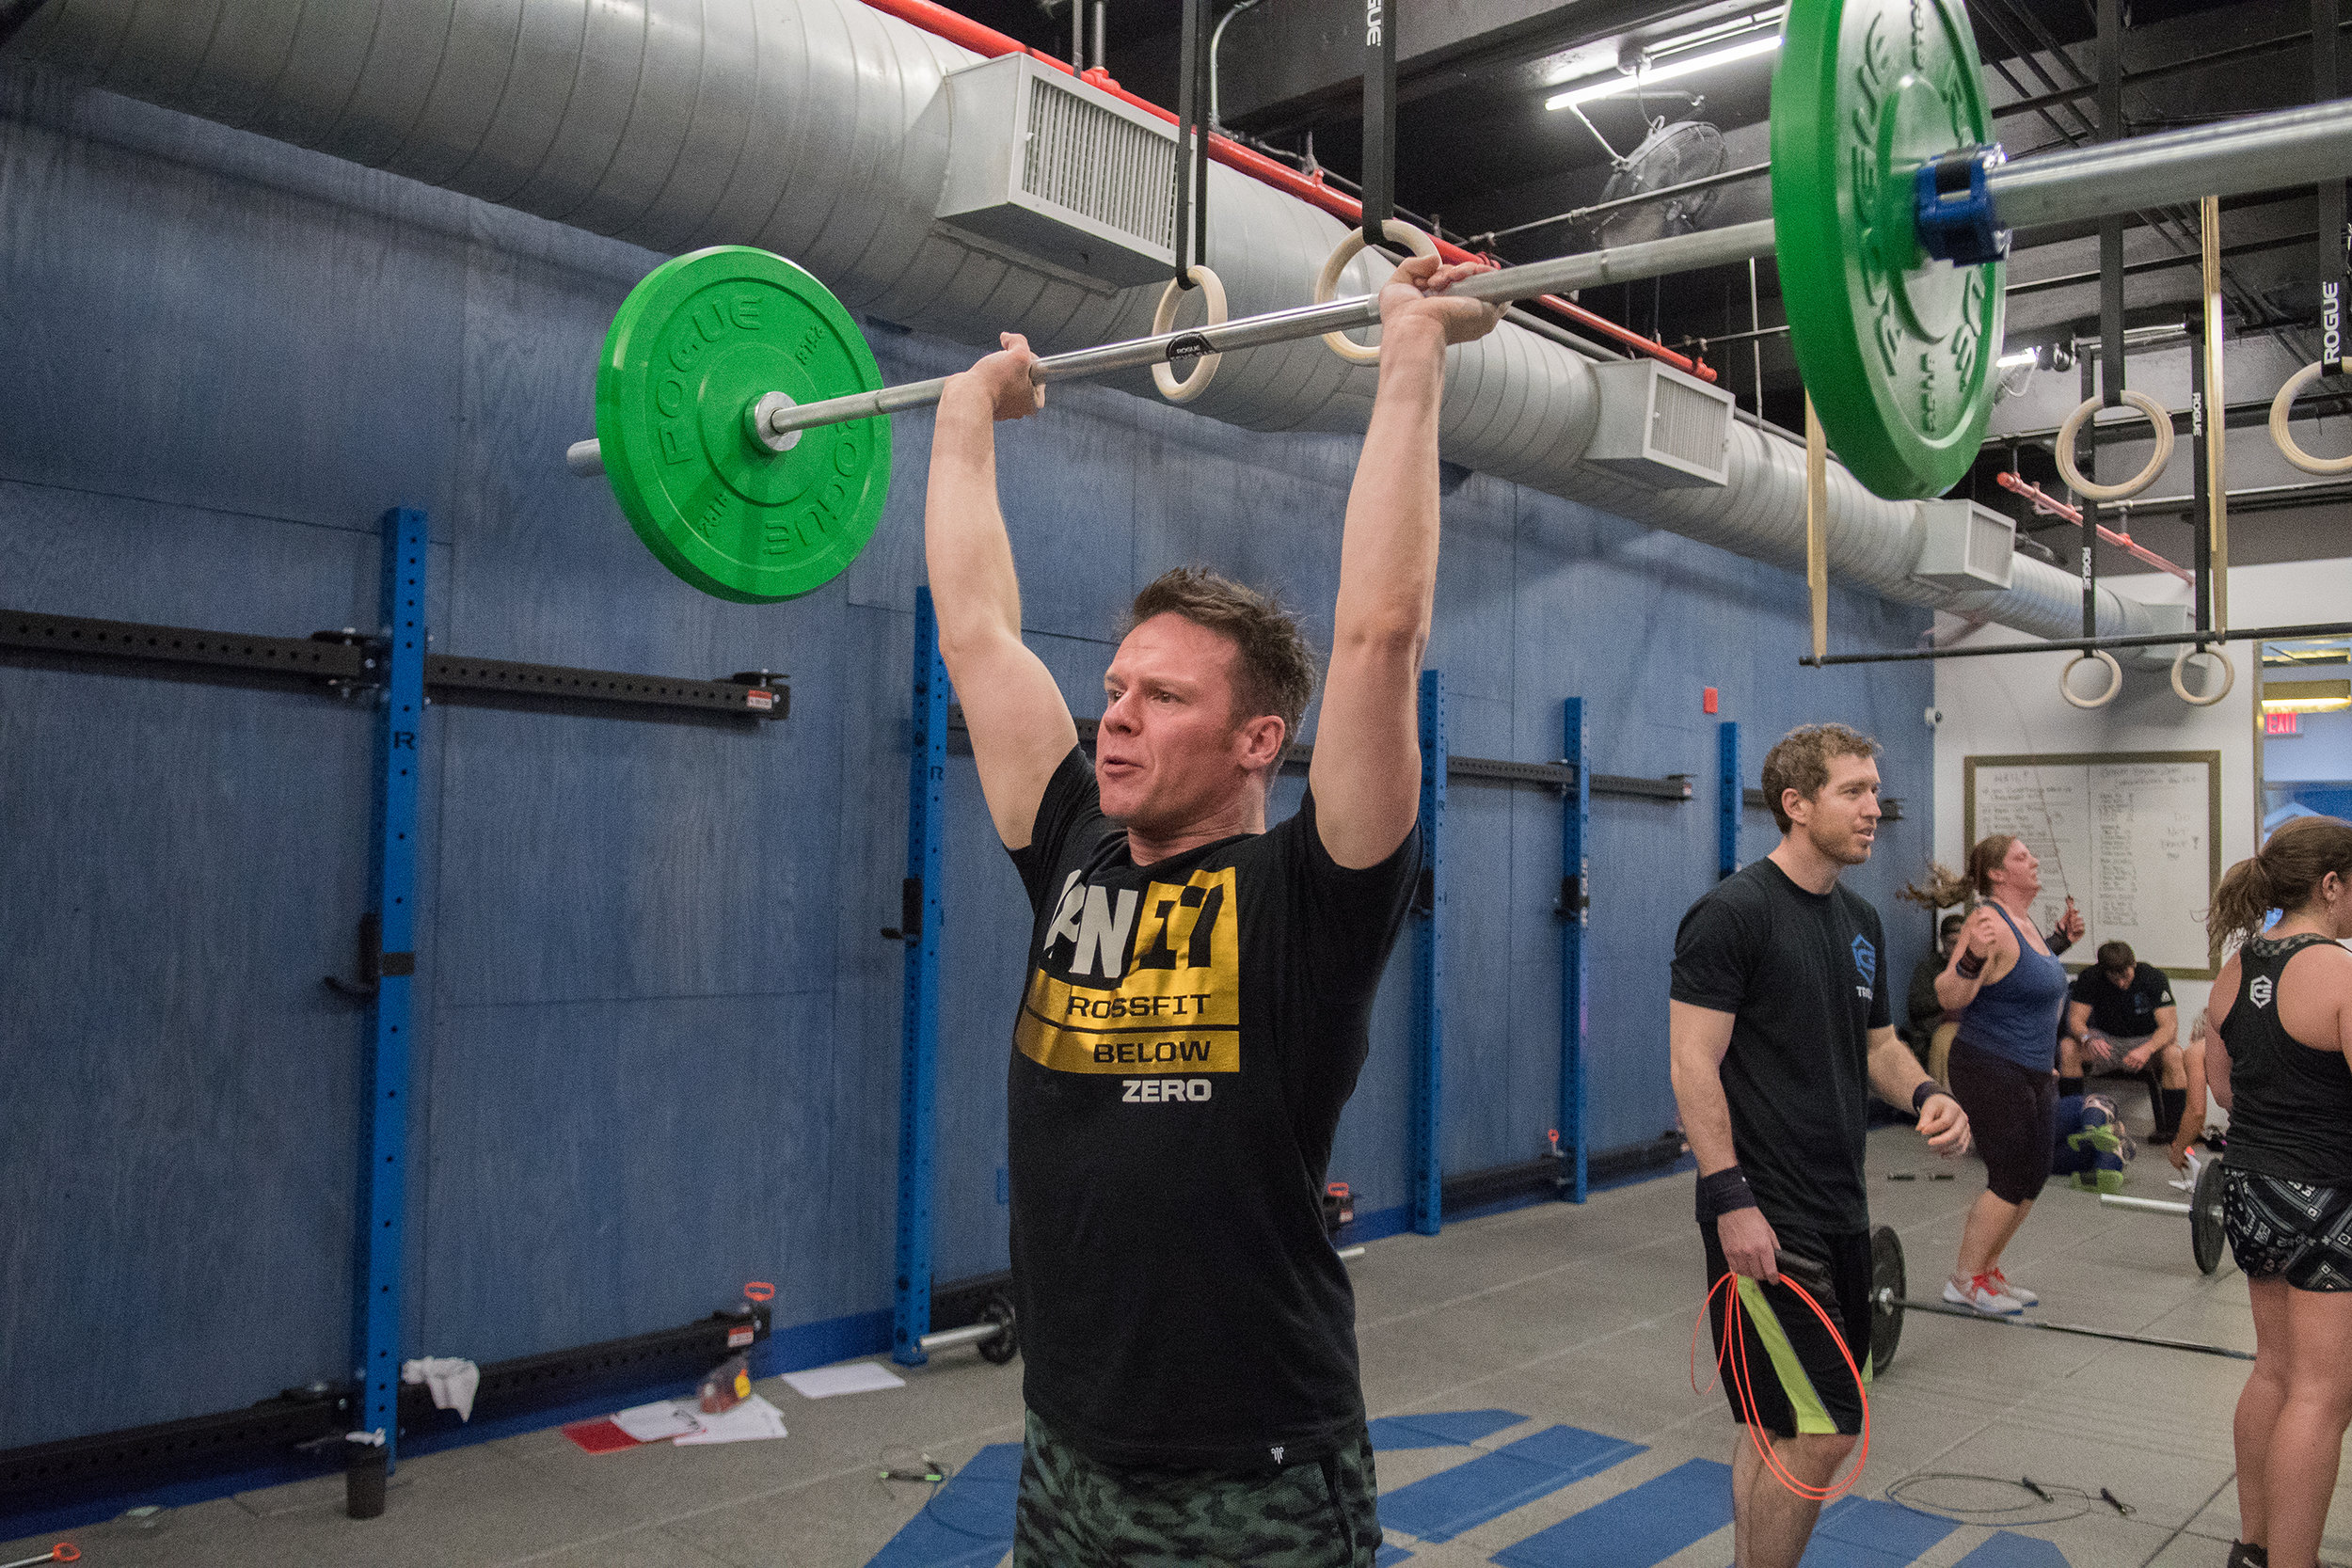 ICE NYC CrossFit Open 17.5 @martsromero - Quick Selects 019 20170324.jpg